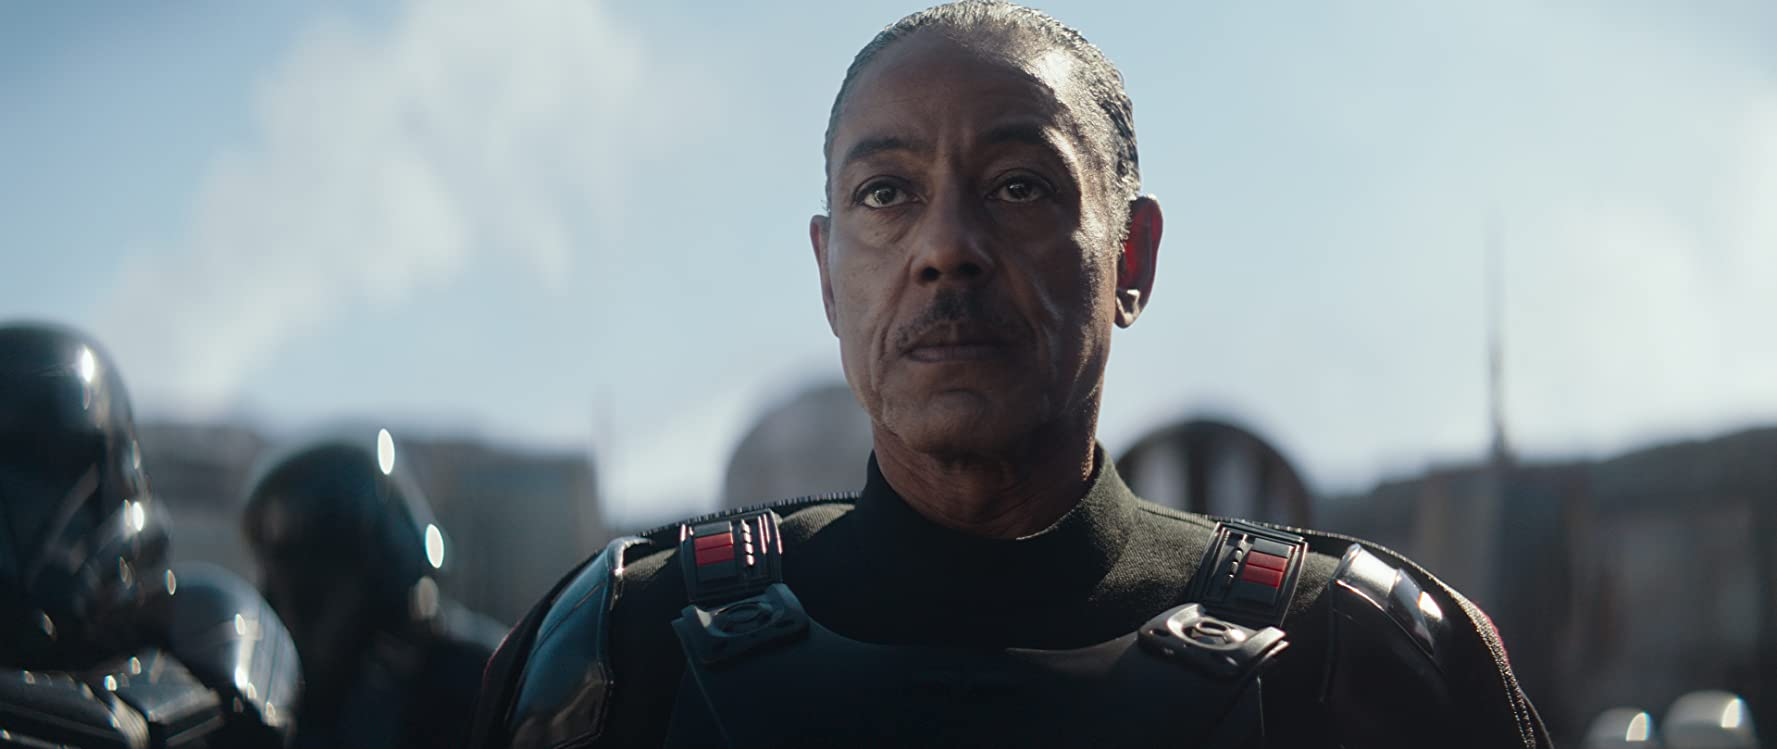 Giancarlo Esposito in The Mandalorian (2019)